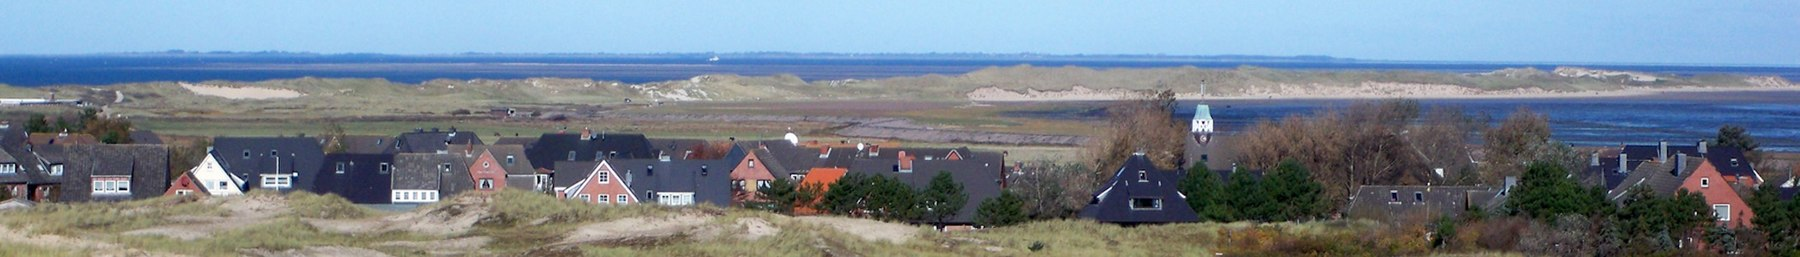 WV banner North Frisian Islands Norddorf.jpg